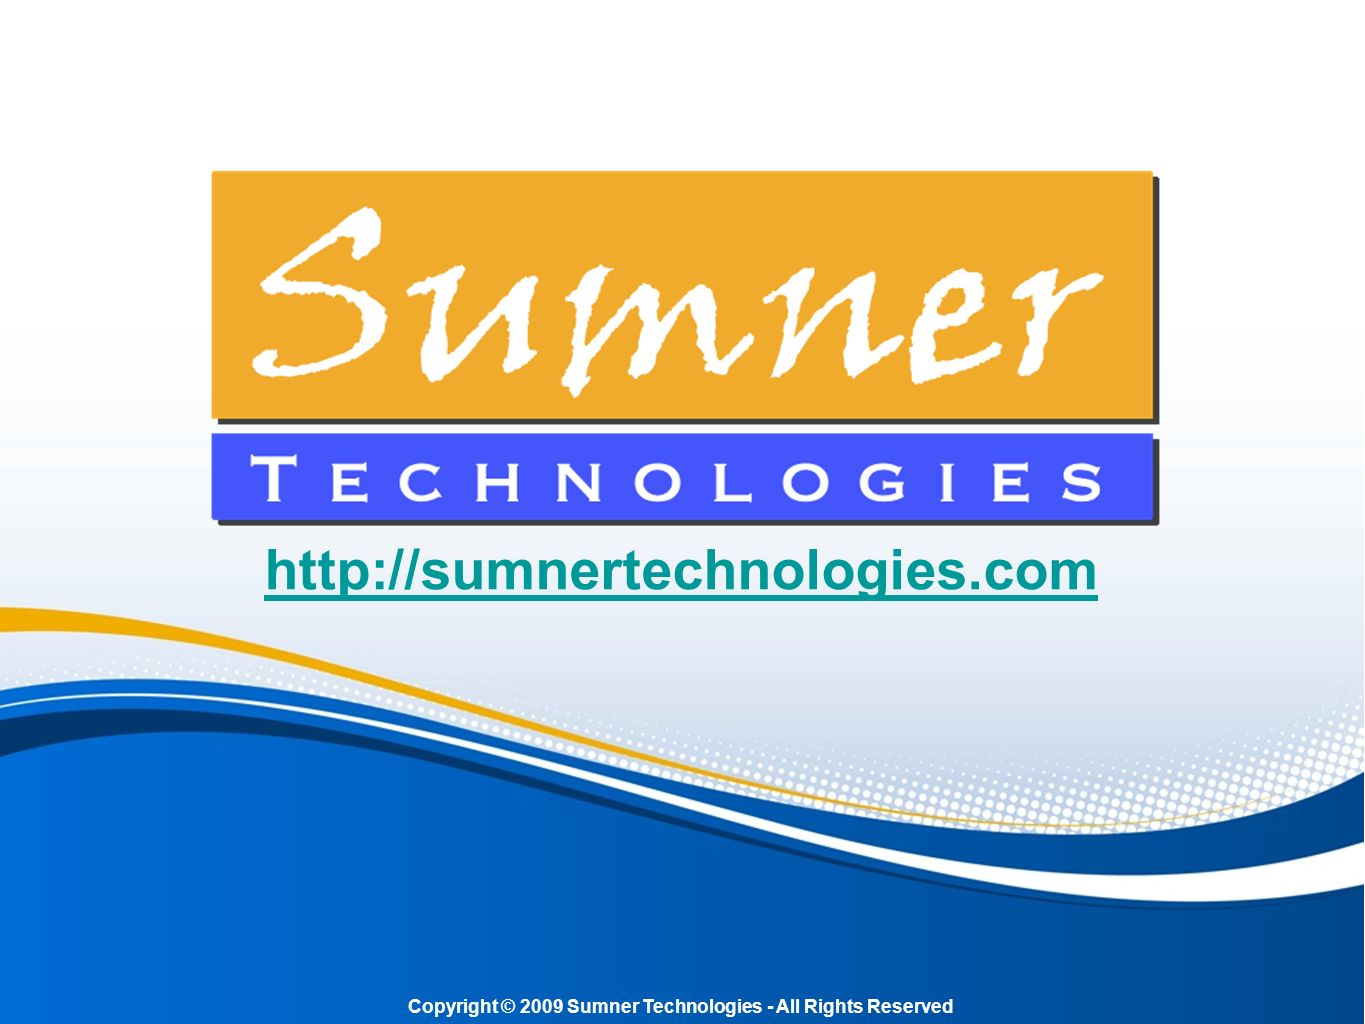 Copyright © 2009 Sumner Technologies - All Rights Reserved